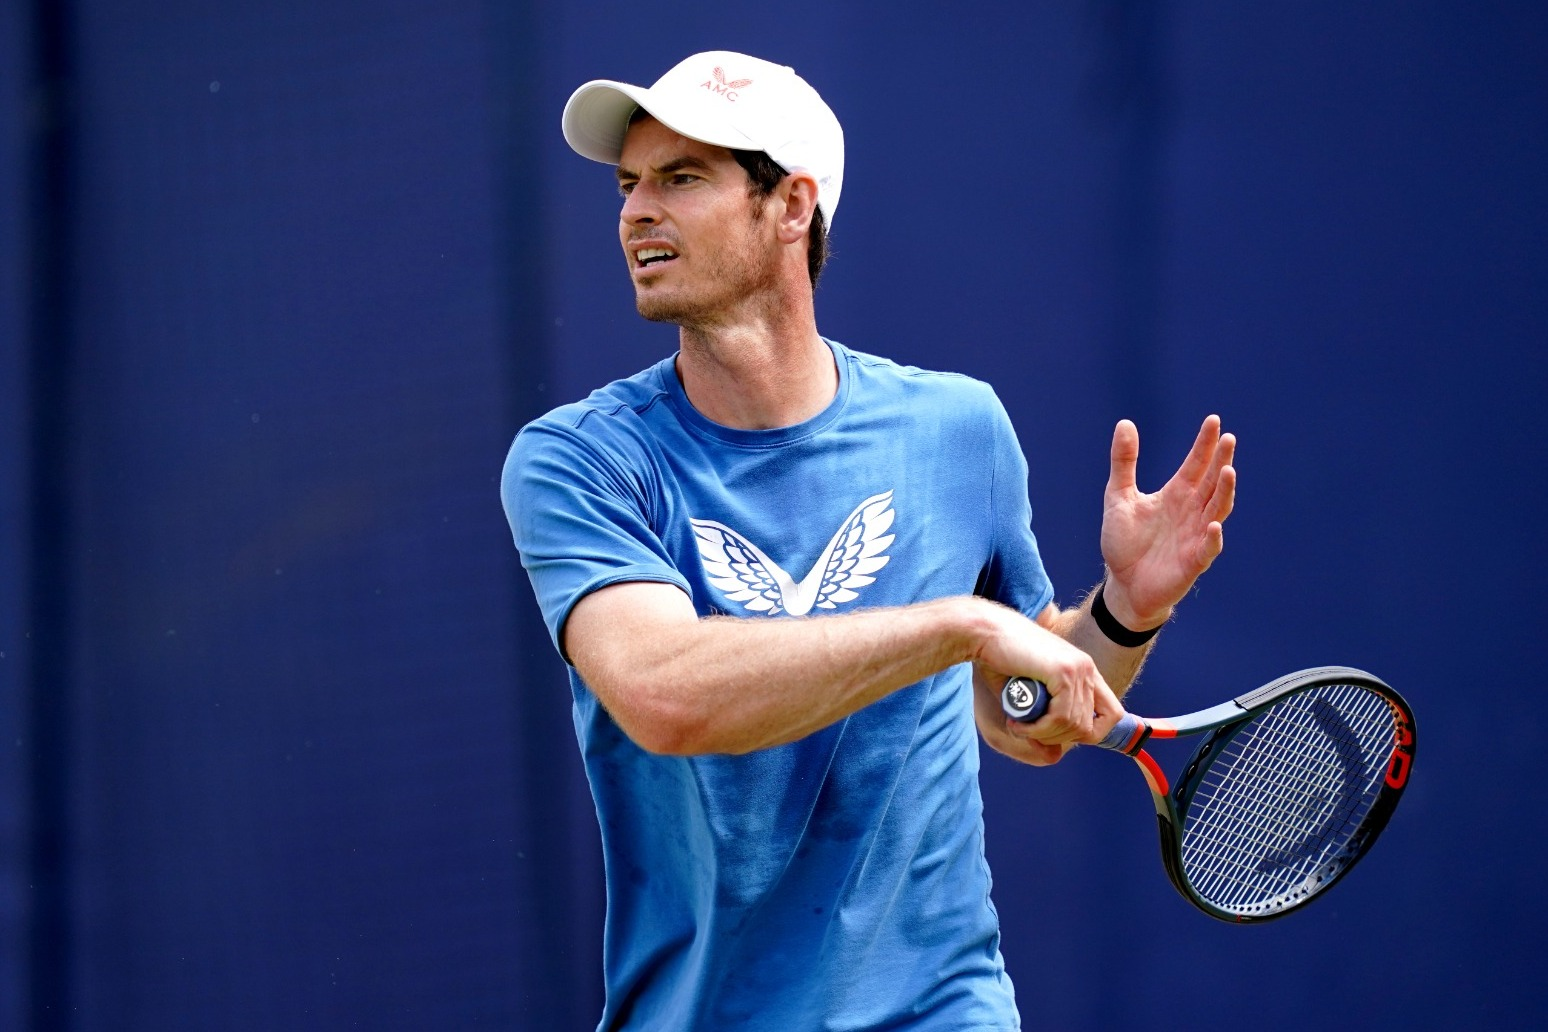 Andy Murray cruises into second round at San Diego Open